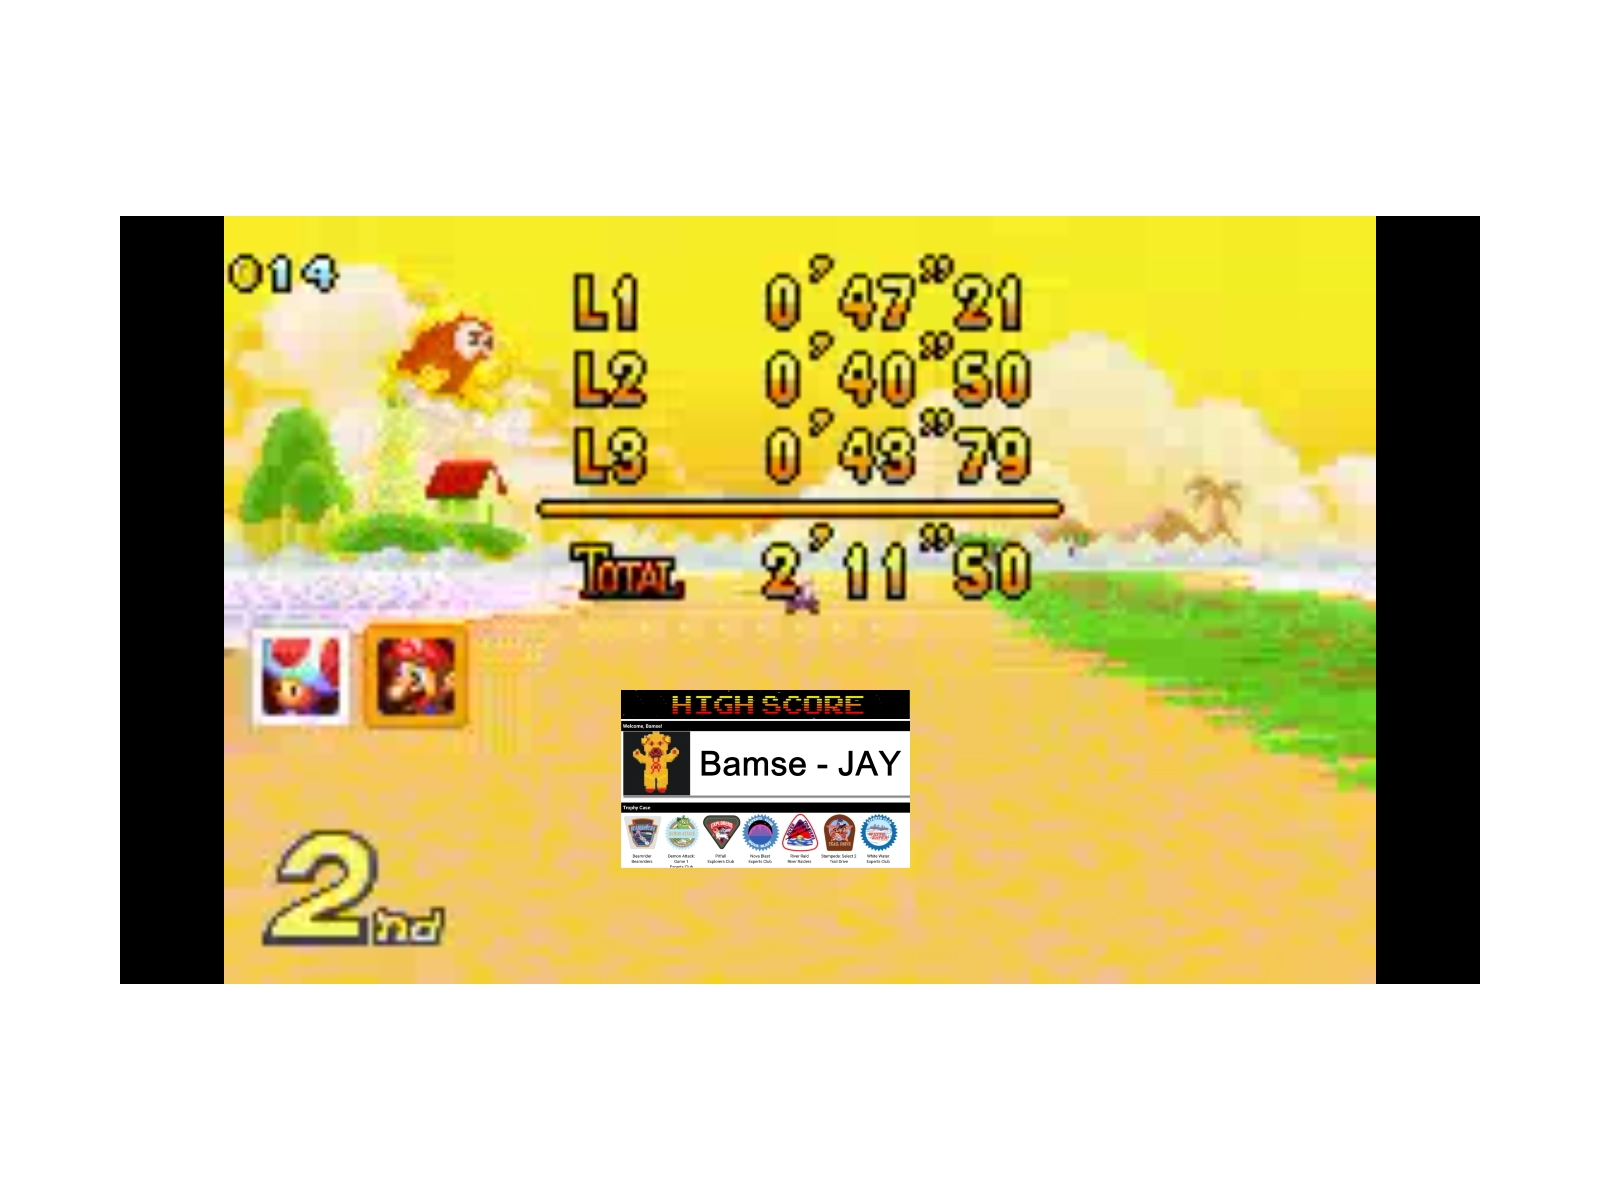 Bamse: Mario Kart Super Circuit: Cheep Cheep Island [100cc] (GBA Emulated) 0:02:11.5 points on 2019-12-17 13:17:23